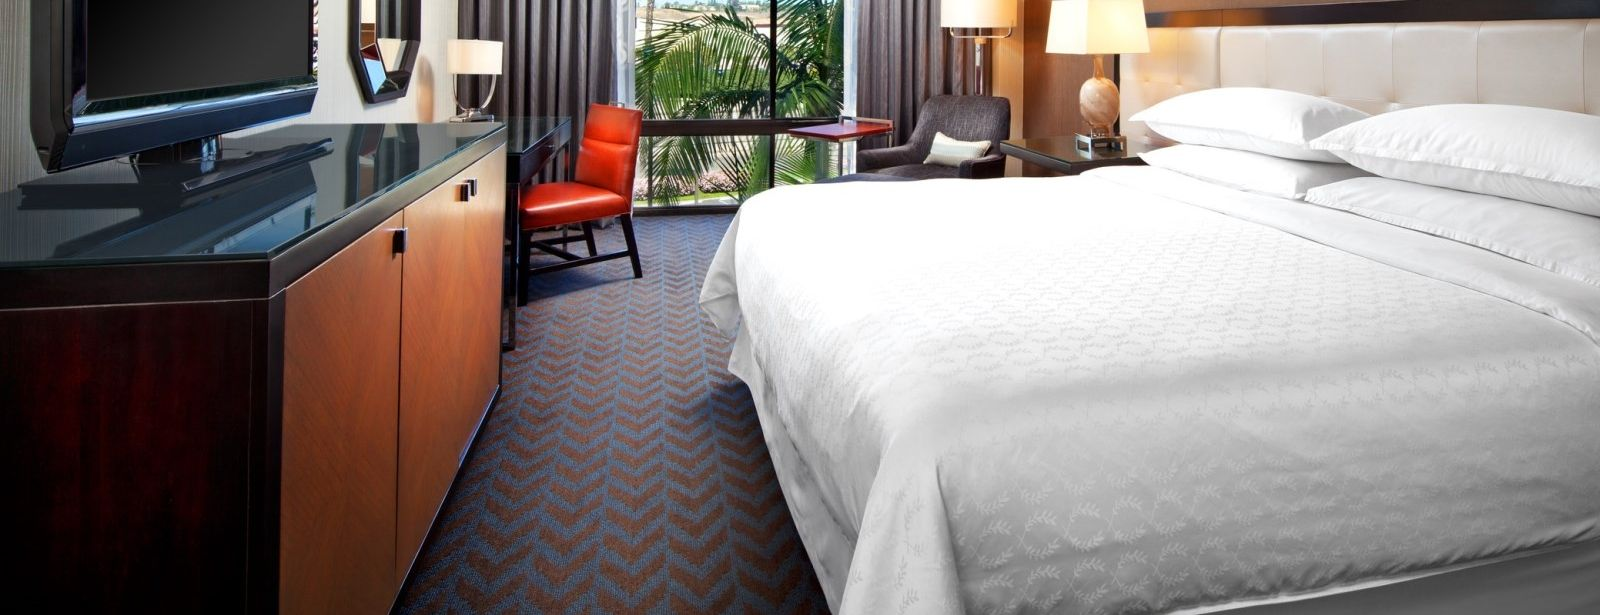 Mission Valley Traditional Guest Room - King and Queen Guest Rooms | Sheraton Mission Valley San Diego Hotel